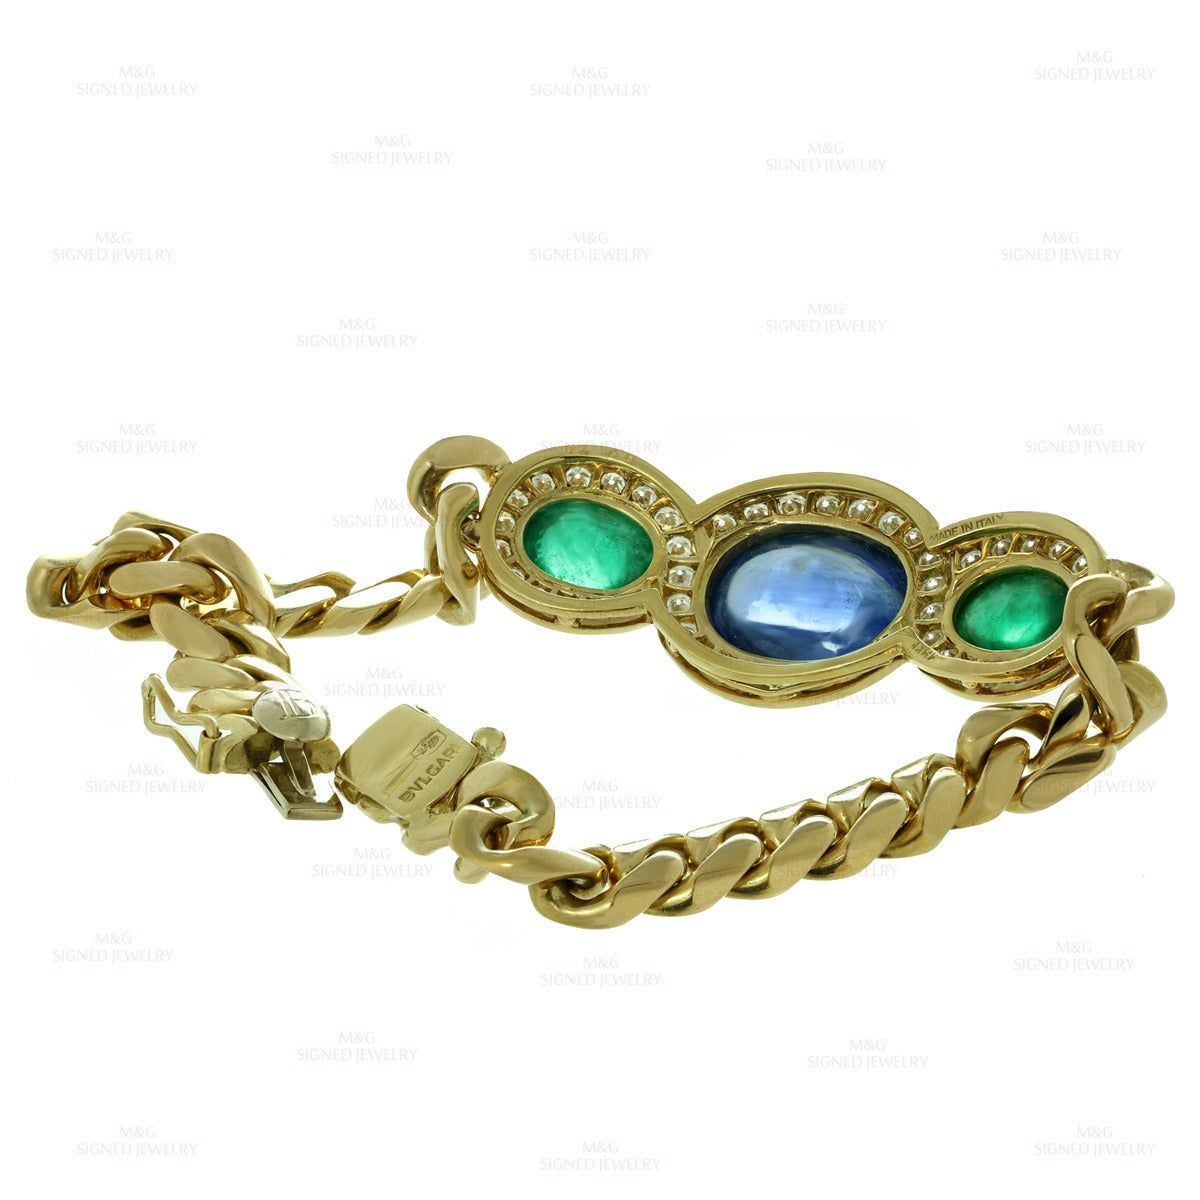 1980s Bulgari Fabulous Sapphire Emerald Diamond Gold Link Bracelet In Good Condition For Sale In New York, NY